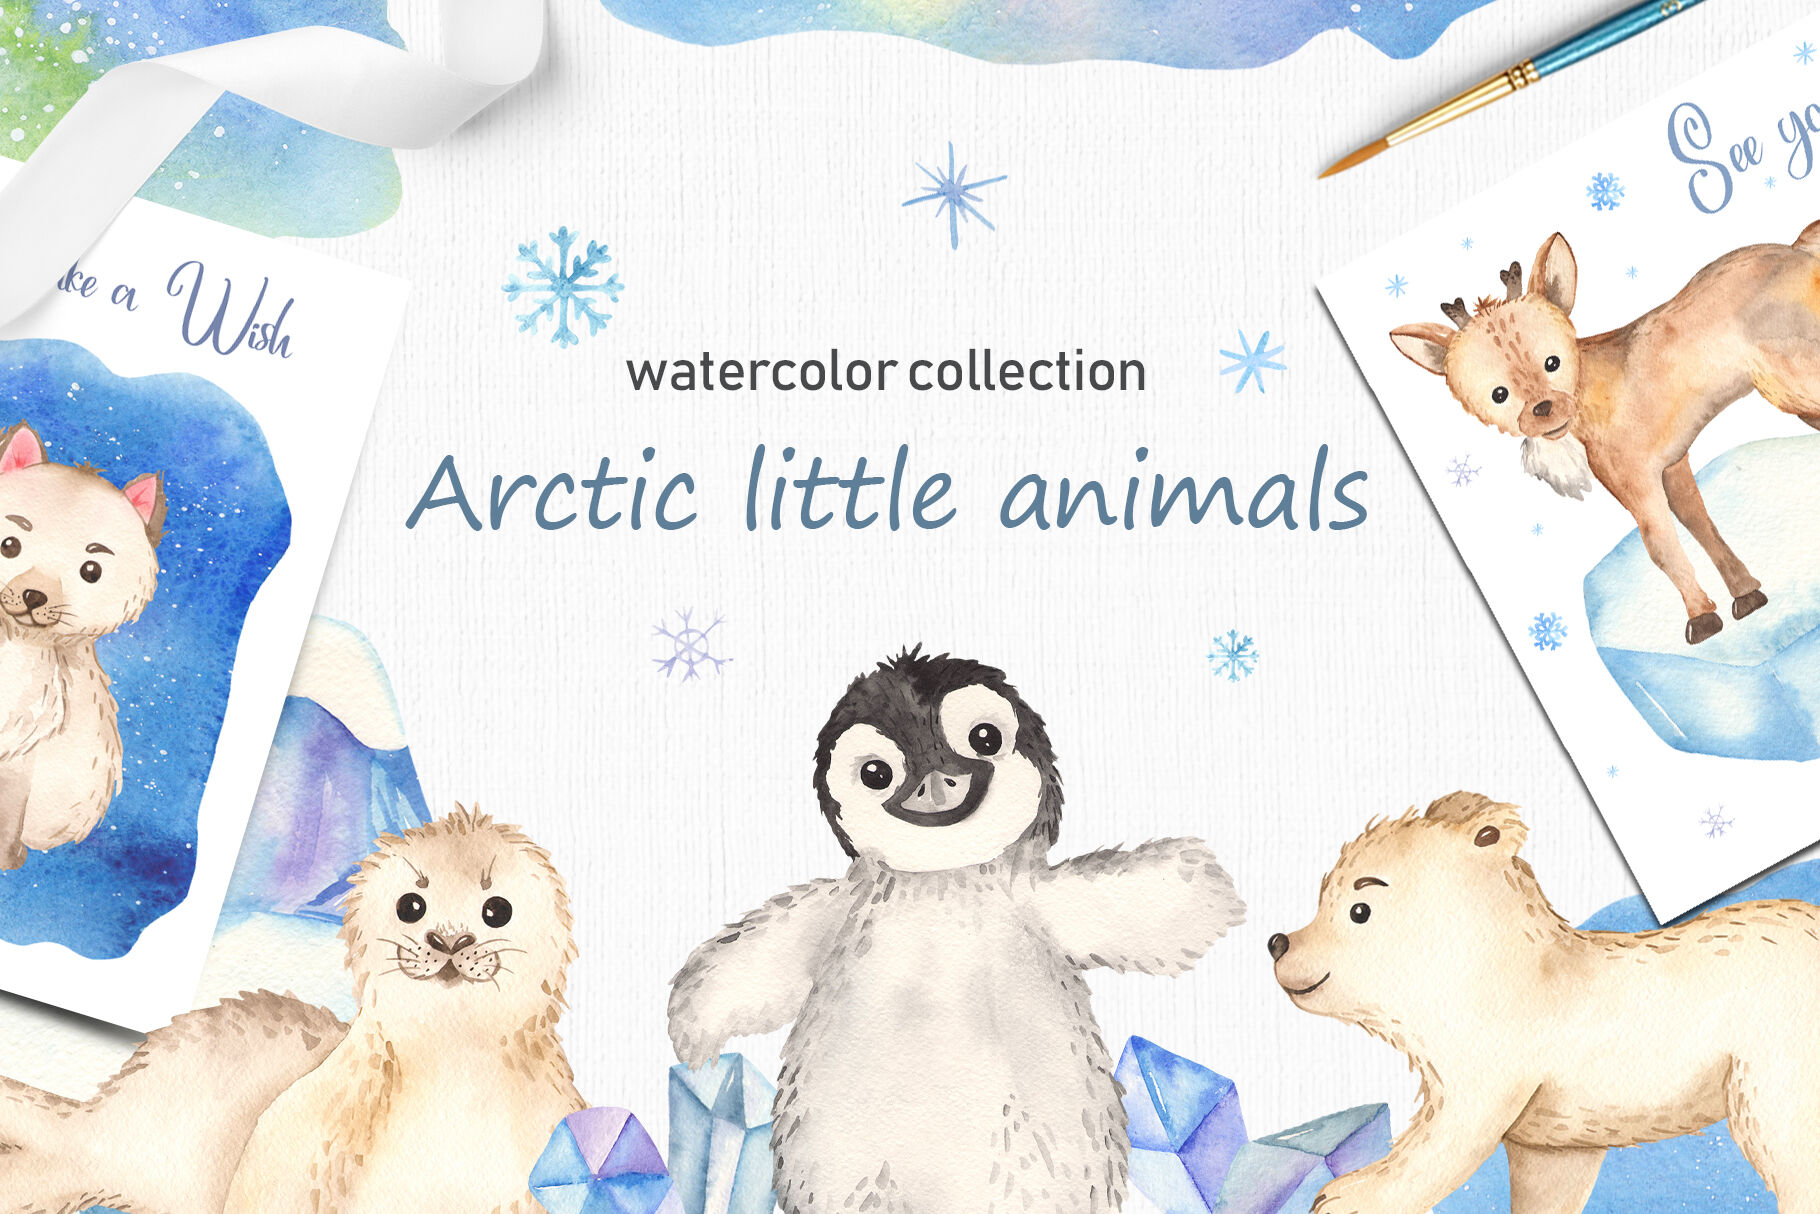 Arctic little animals watercolor collection clipart By.